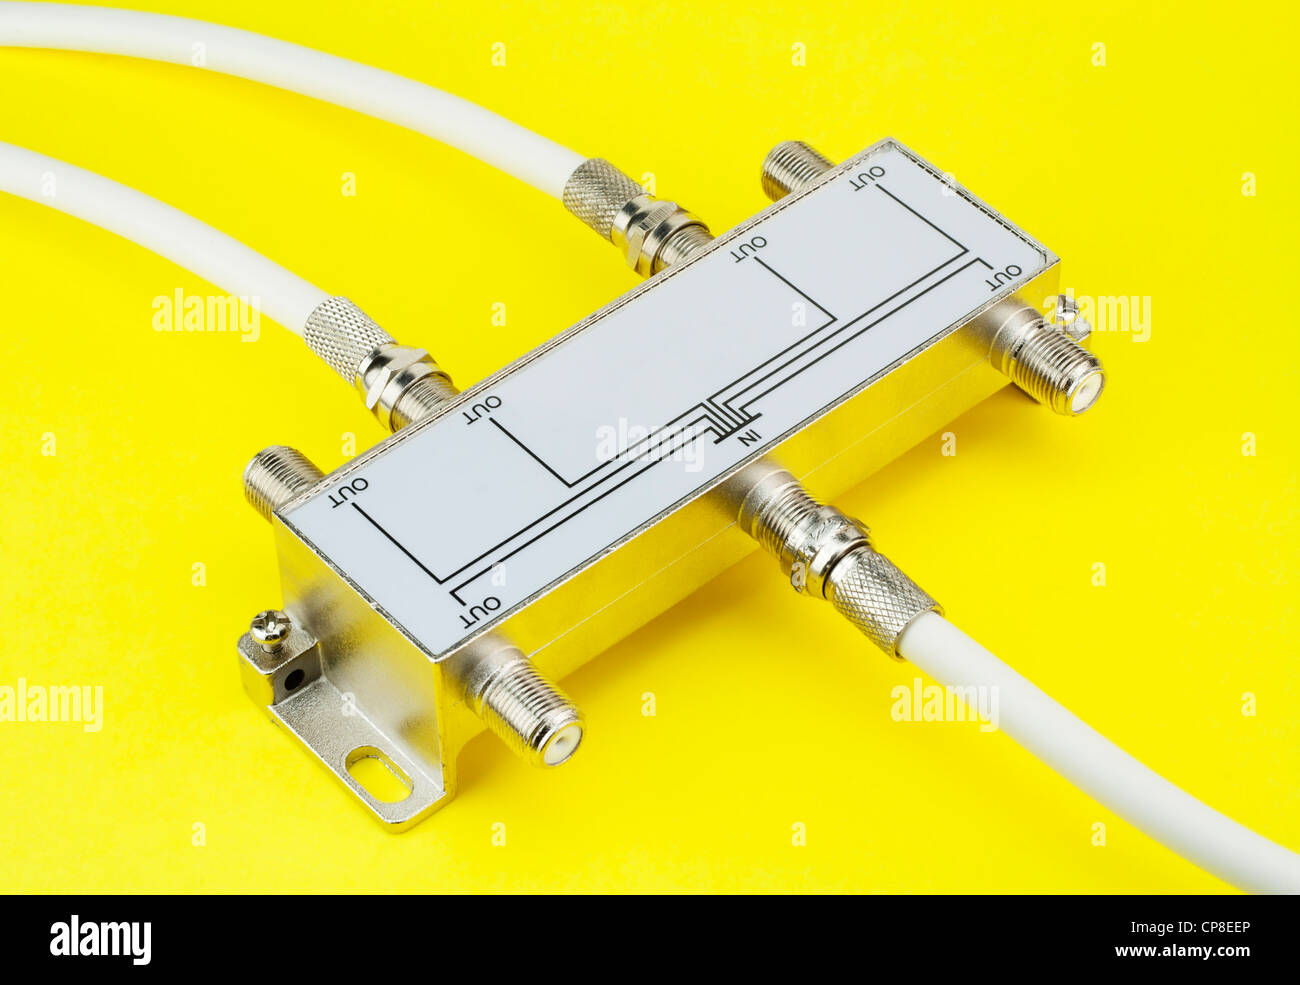 Electric switch device one input and six output on a yellow table. Mass production - Stock Image